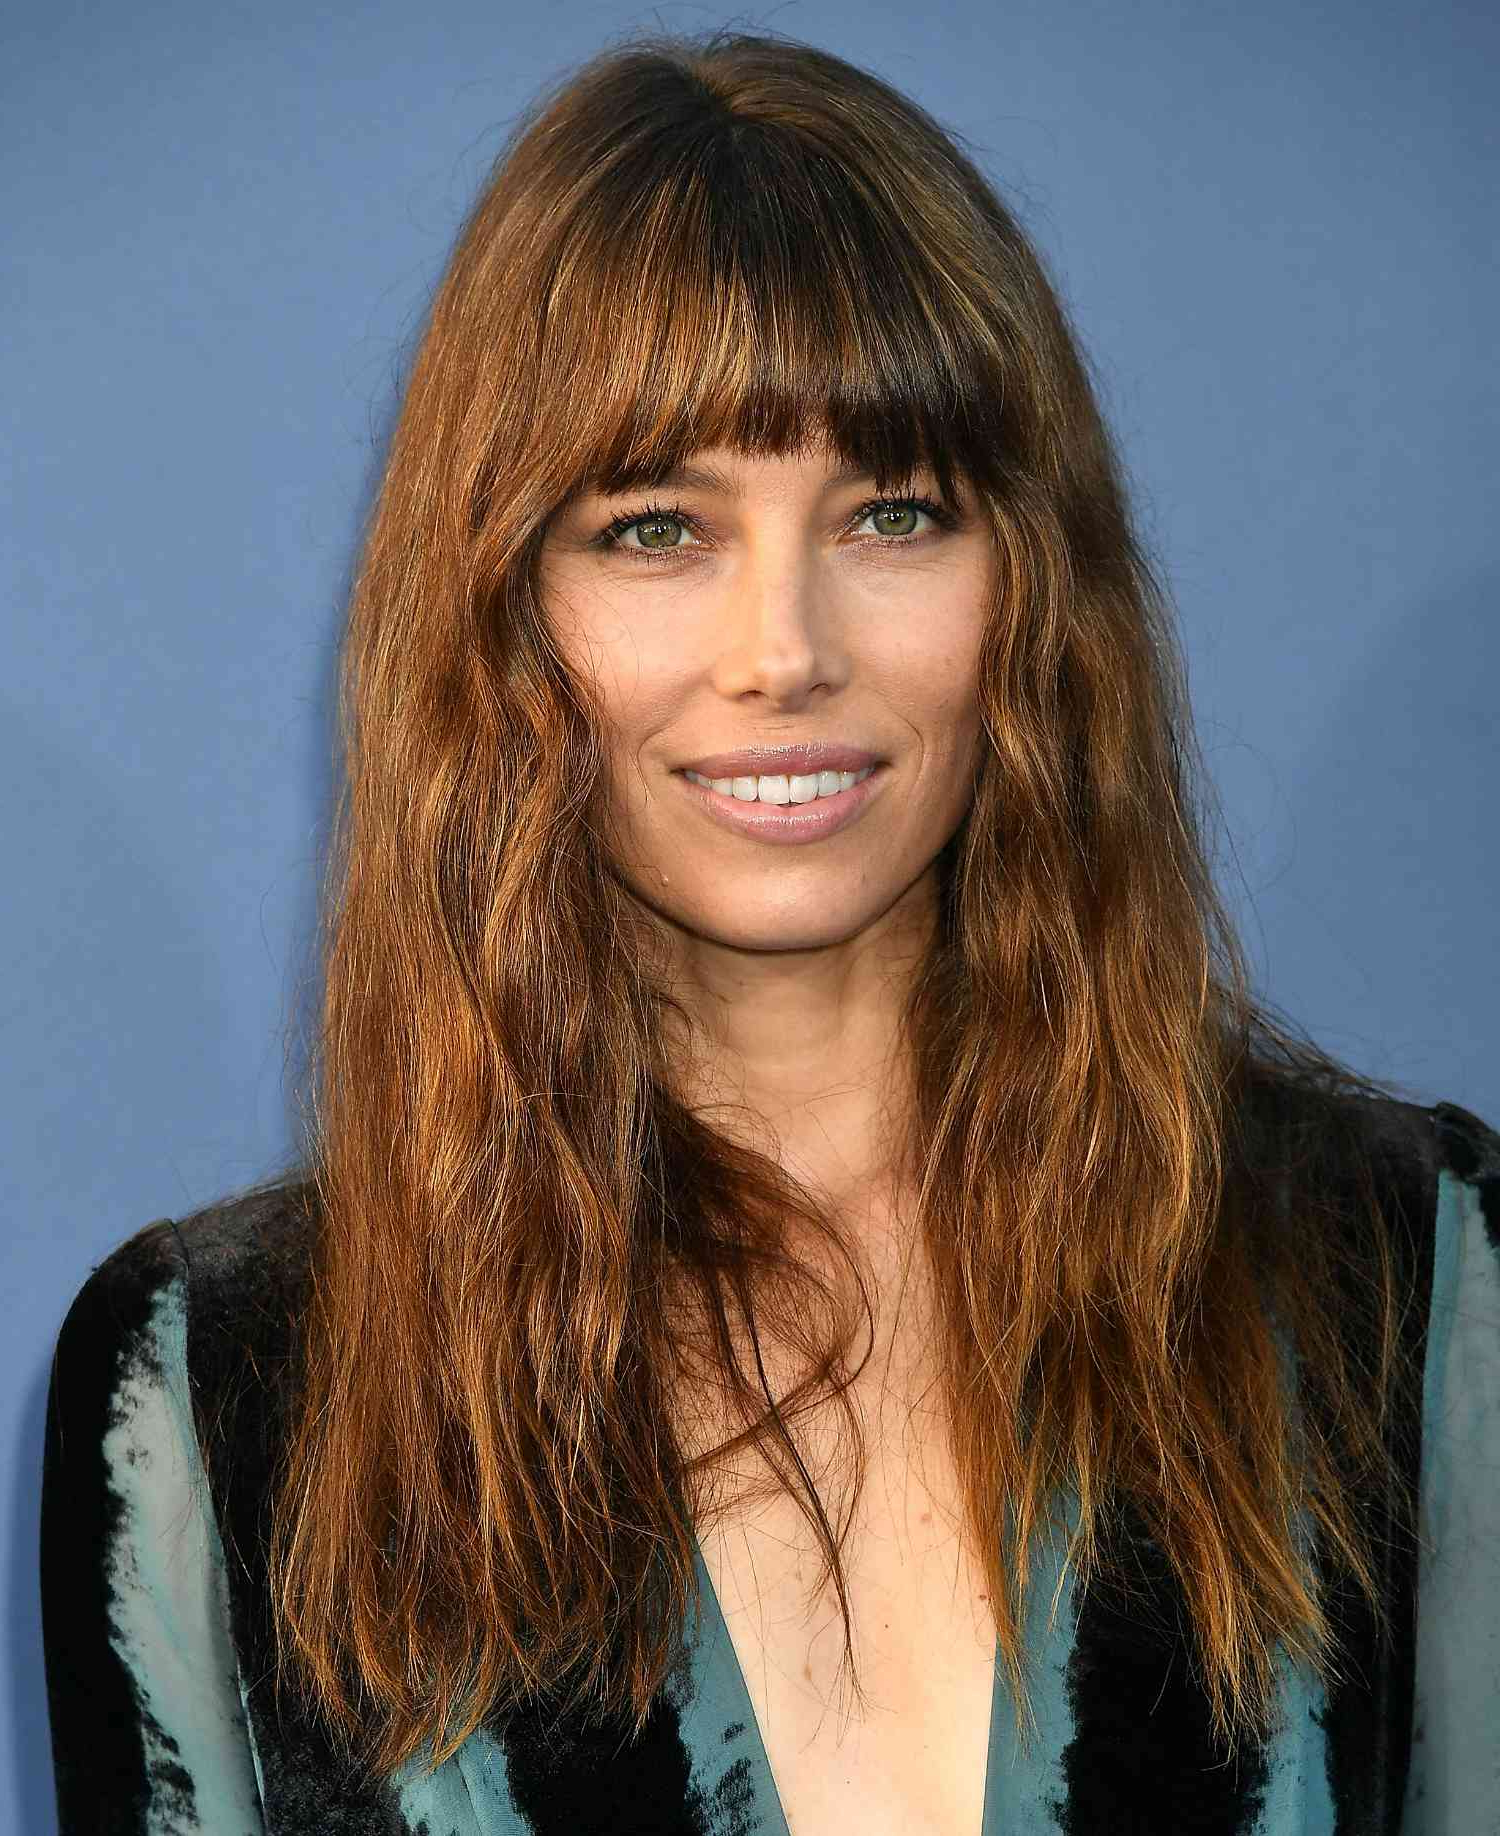 A Gallery Of Hairstyles Featuring Fringe Bangs Intended For Most Current Perfect Bangs And Wild Layers Hairstyles (View 8 of 20)